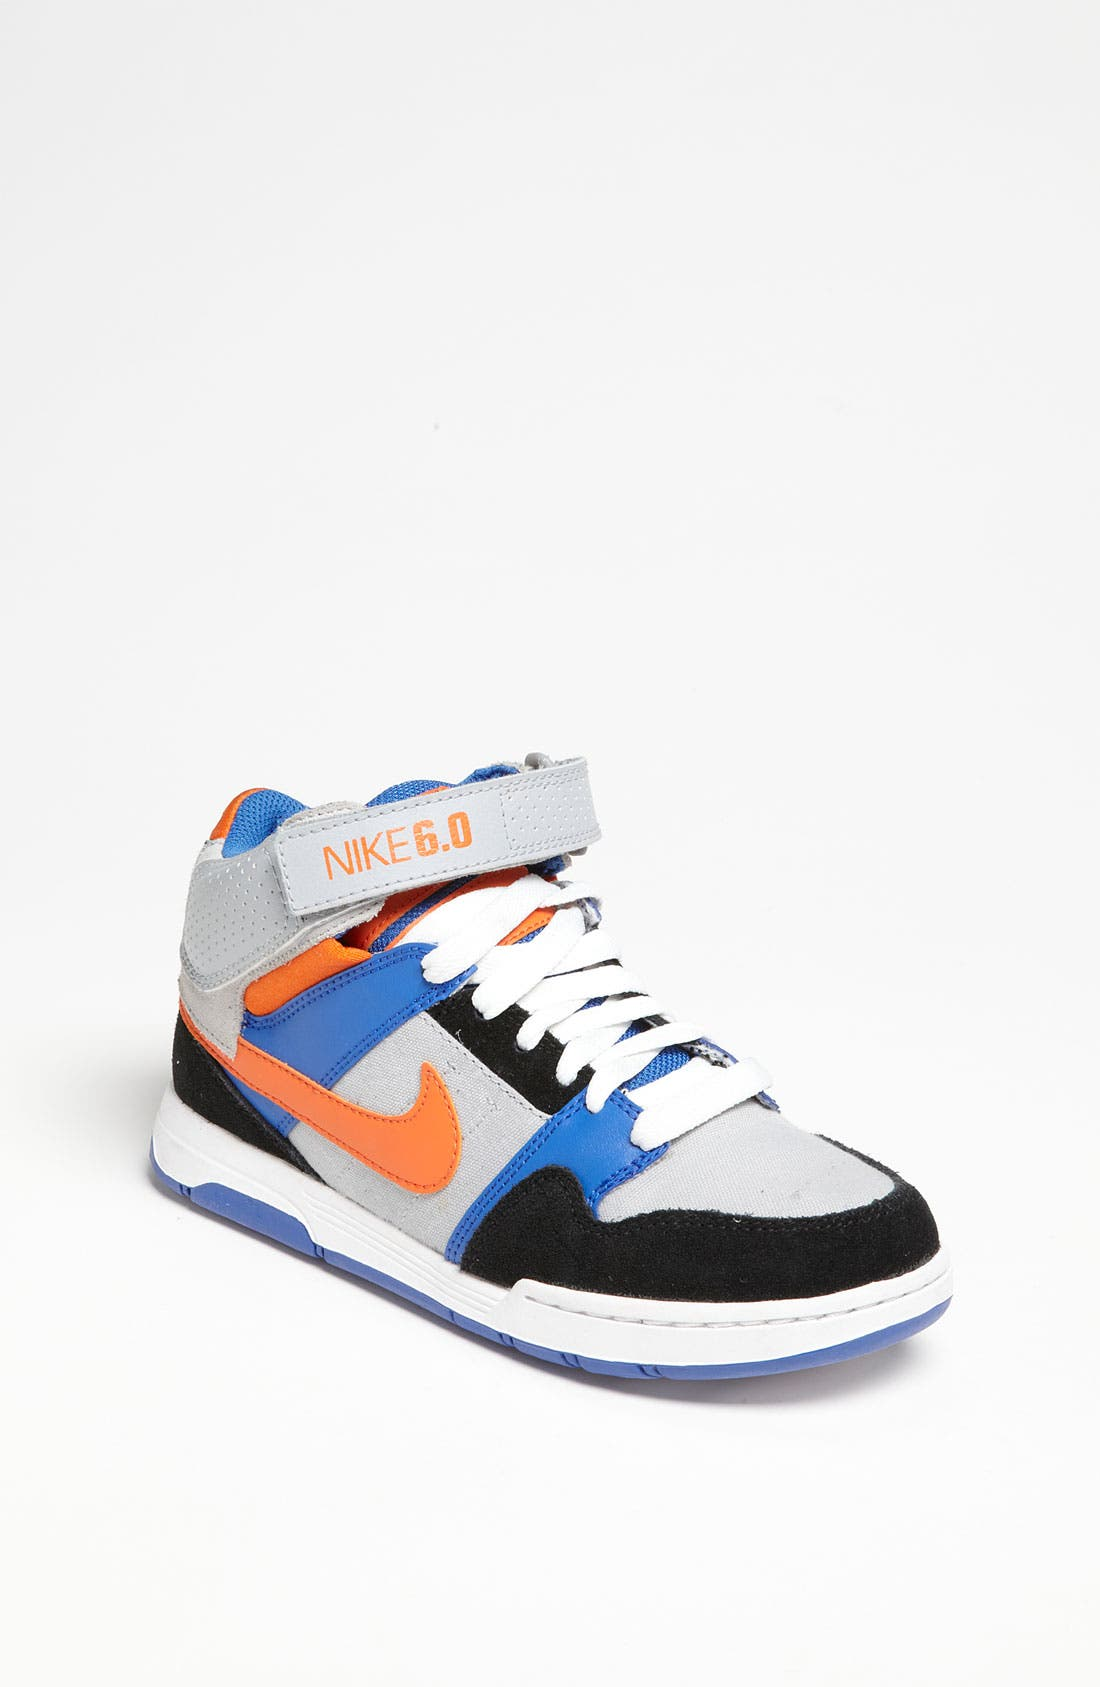 Main Image - Nike 6.0 'Mogan Mid 2 Jr.' Sneaker (Little Kid & Big Kid)